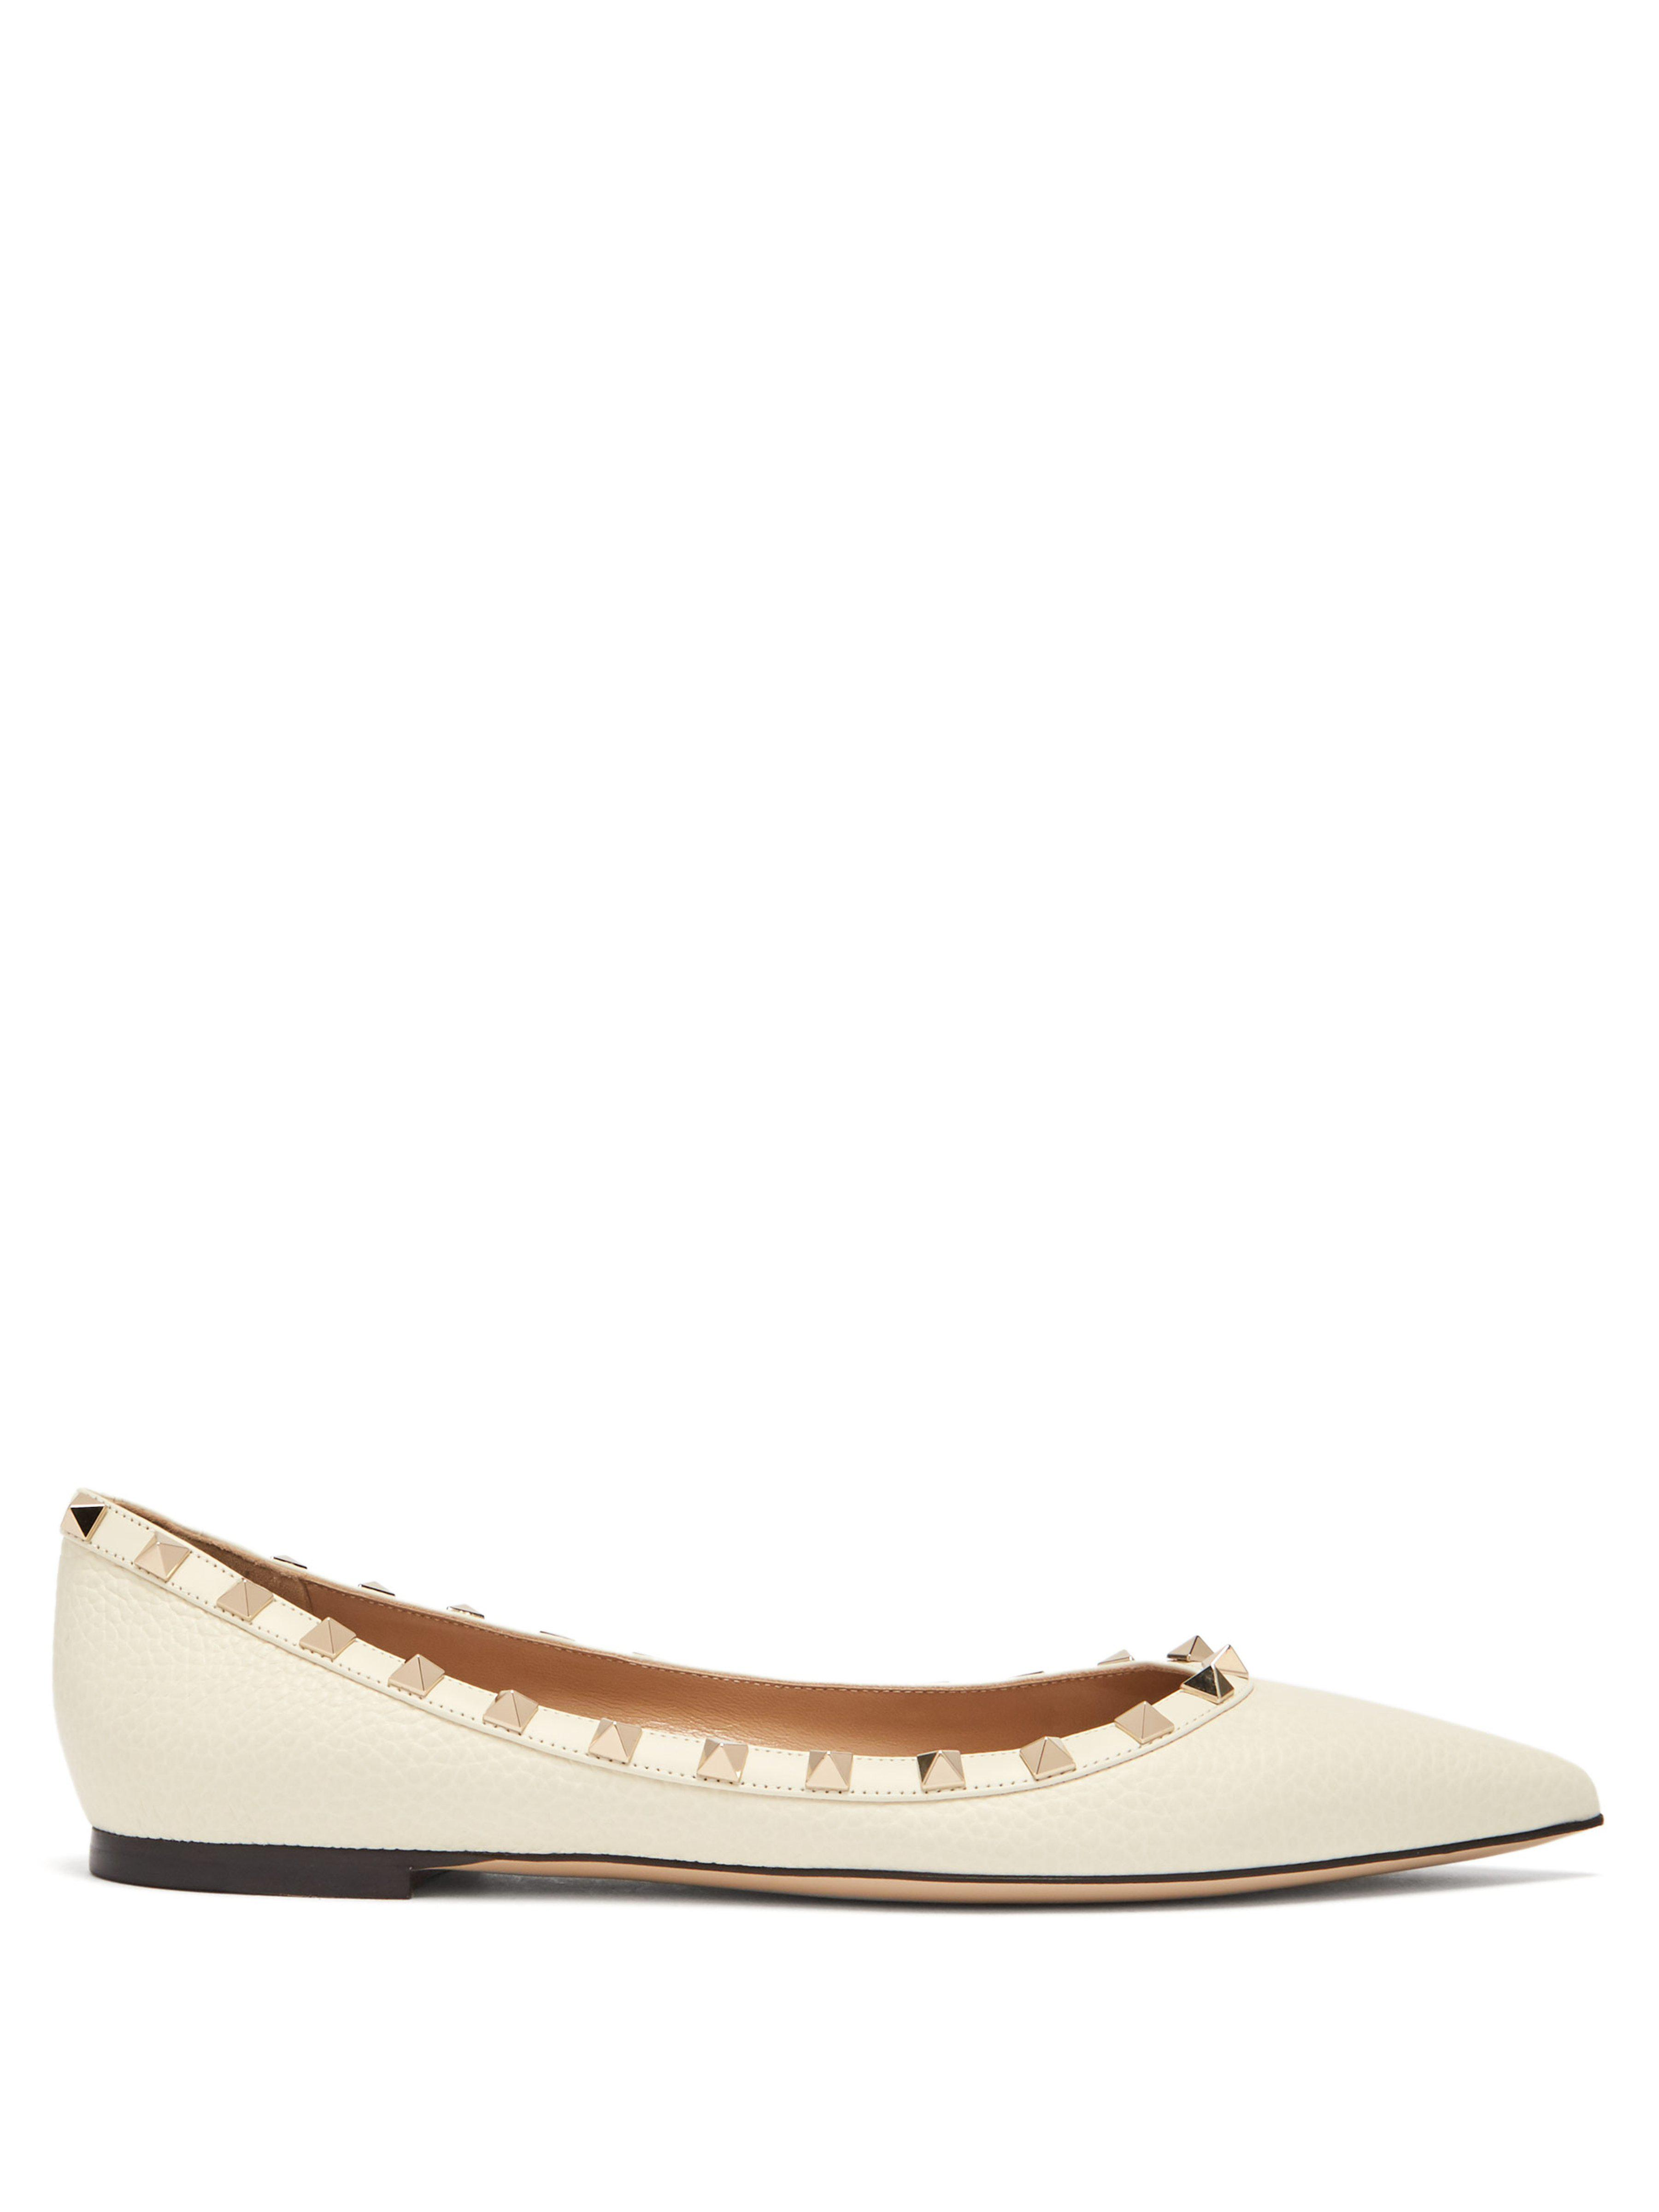 c166563a4edd Valentino Rockstud Grained Leather Flats in White - Lyst